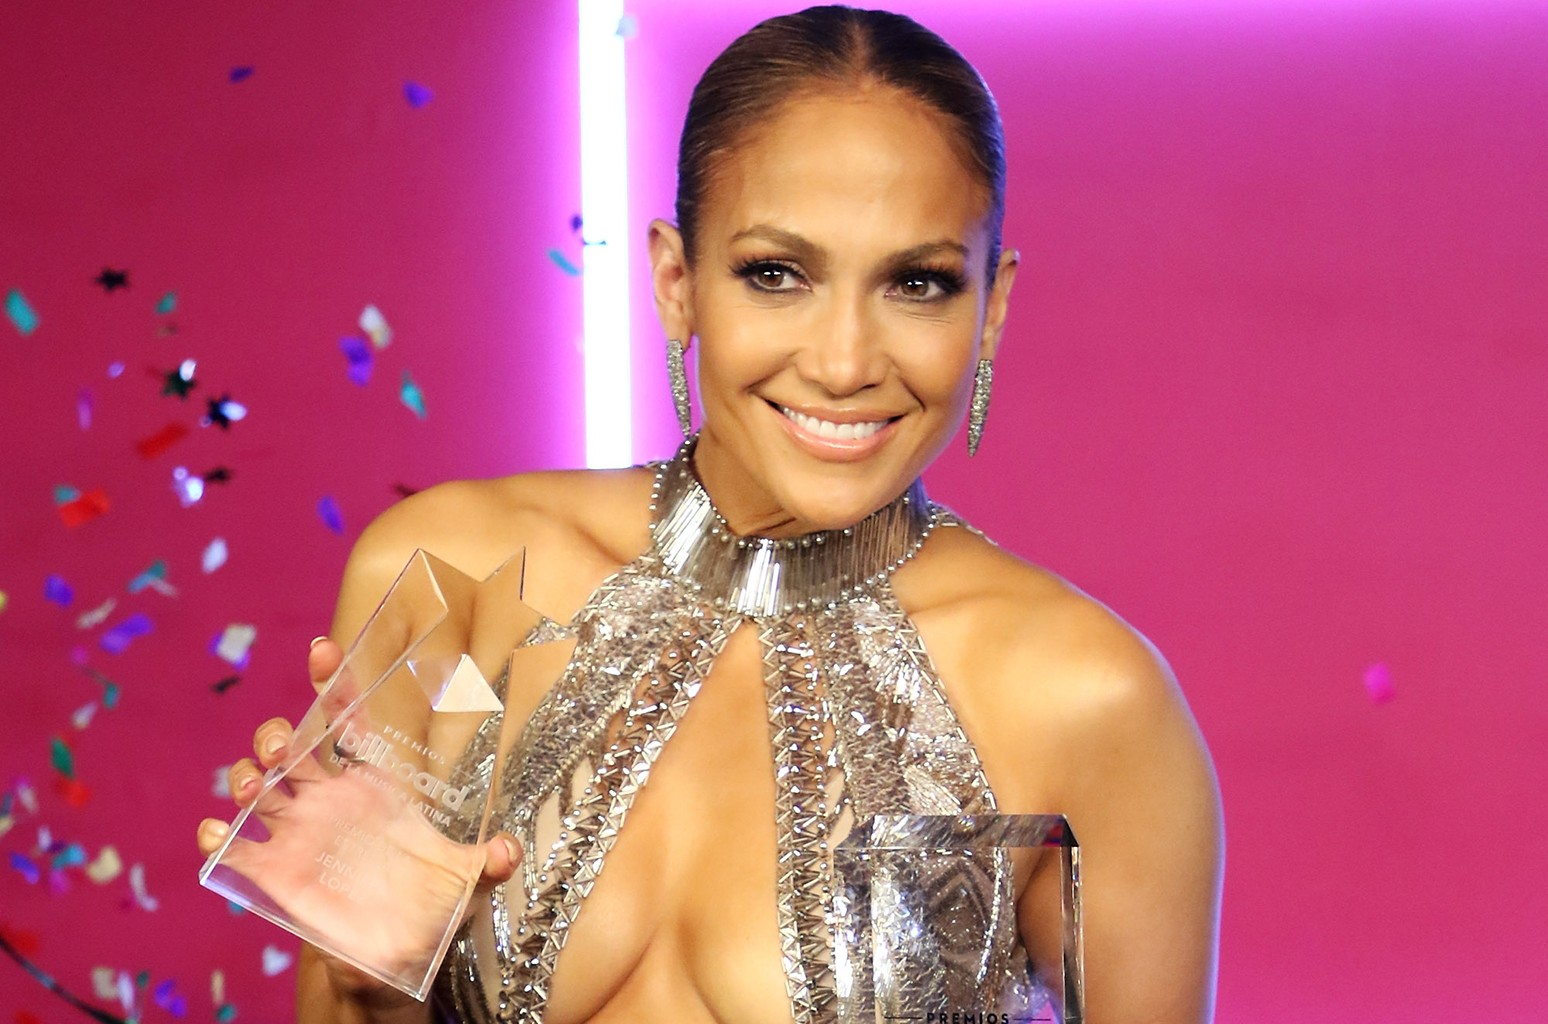 Jennifer Lopez poses with awards in the press room during the Billboard Latin Music Awards at Watsco Center on April 27, 2017 in Coral Gables, Fla.